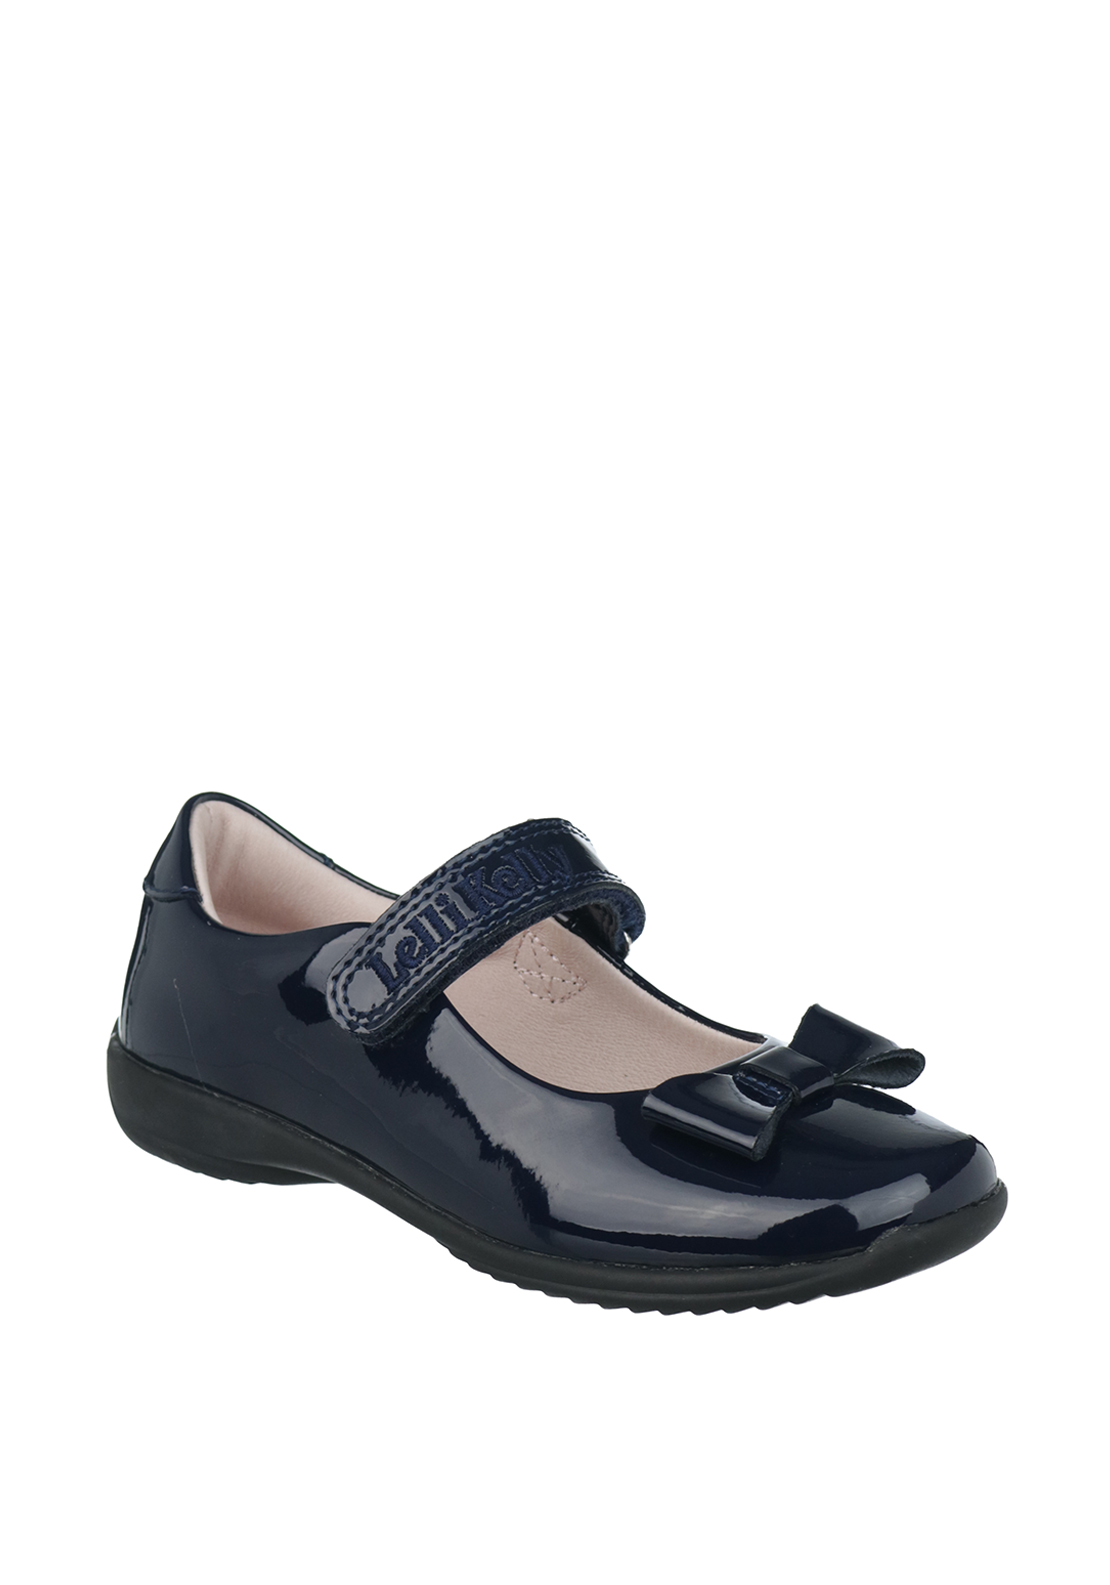 Lelli Kelly Girls Patent Leather Mary Jane School Shoes, Navy